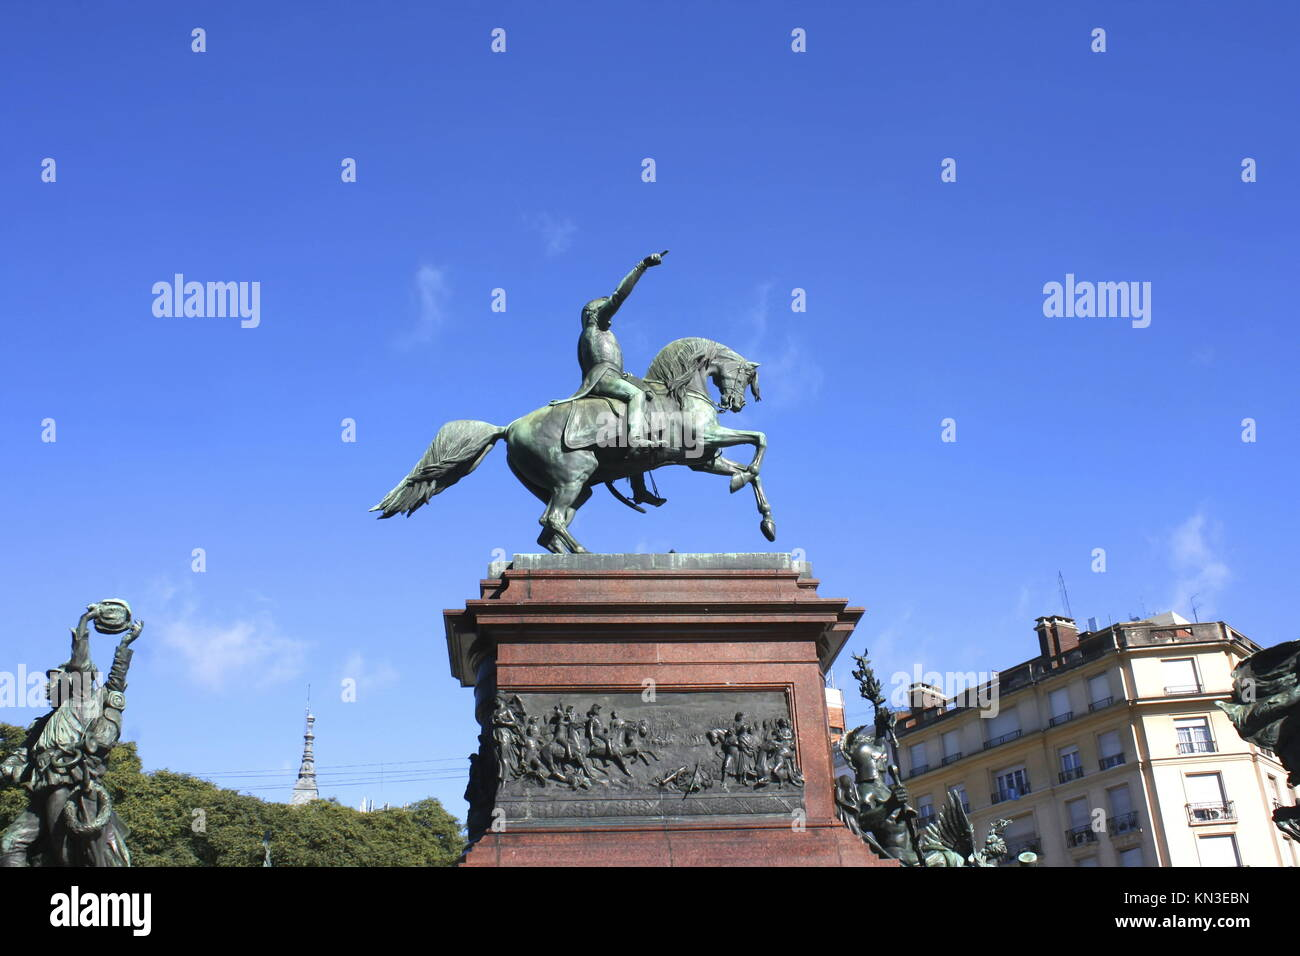 Monument of General San Martin in Buenos Aires, Argentina. - Stock Image